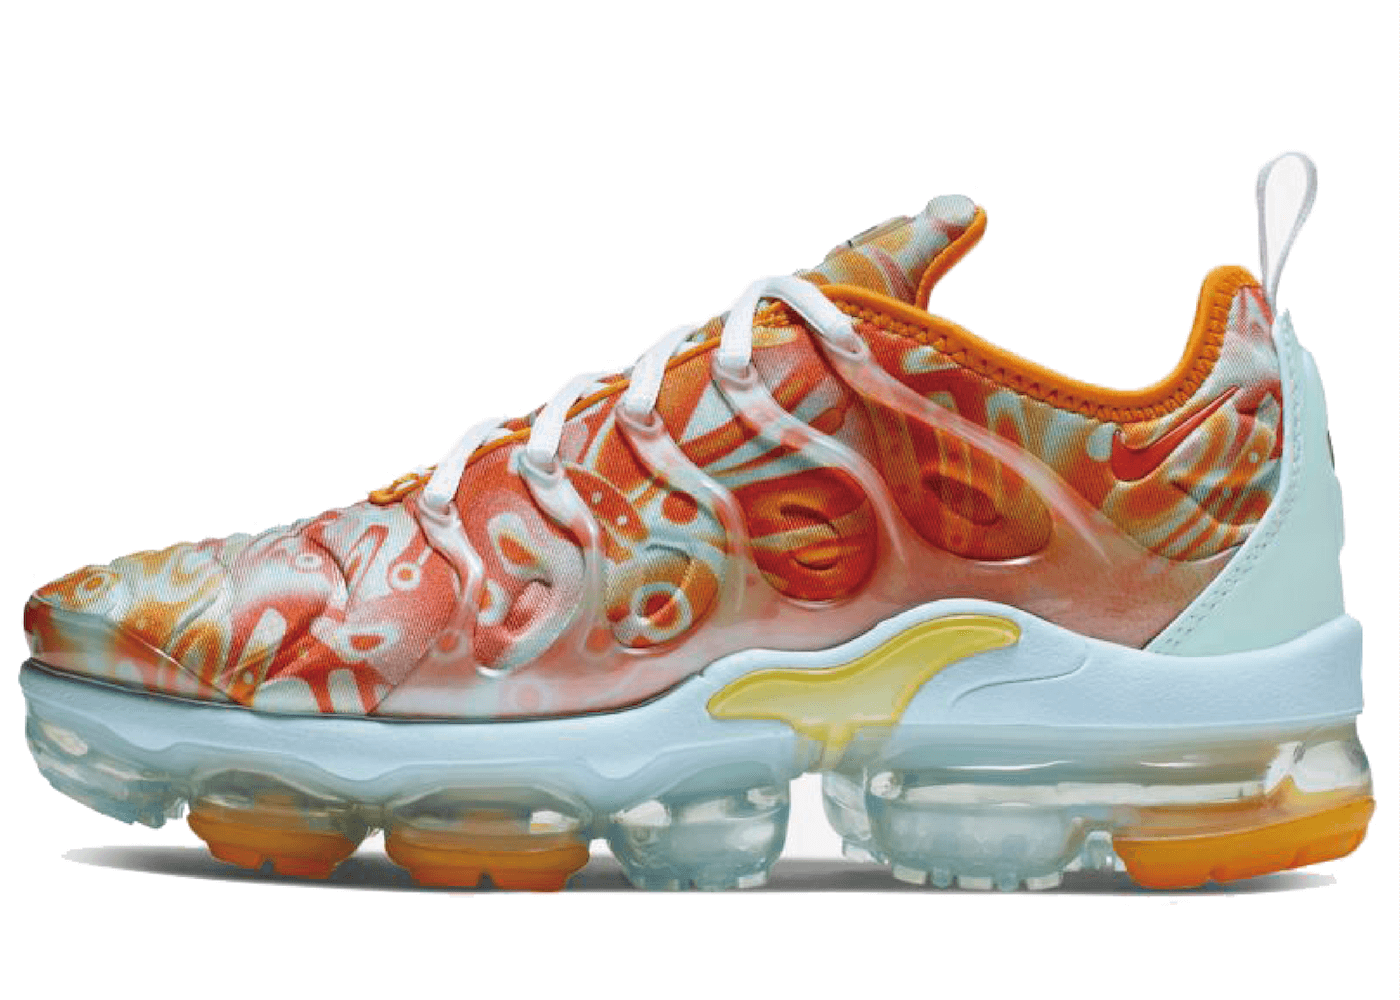 Nike Air VaporMax Plus Dip Dye Mint Orange Womensの写真